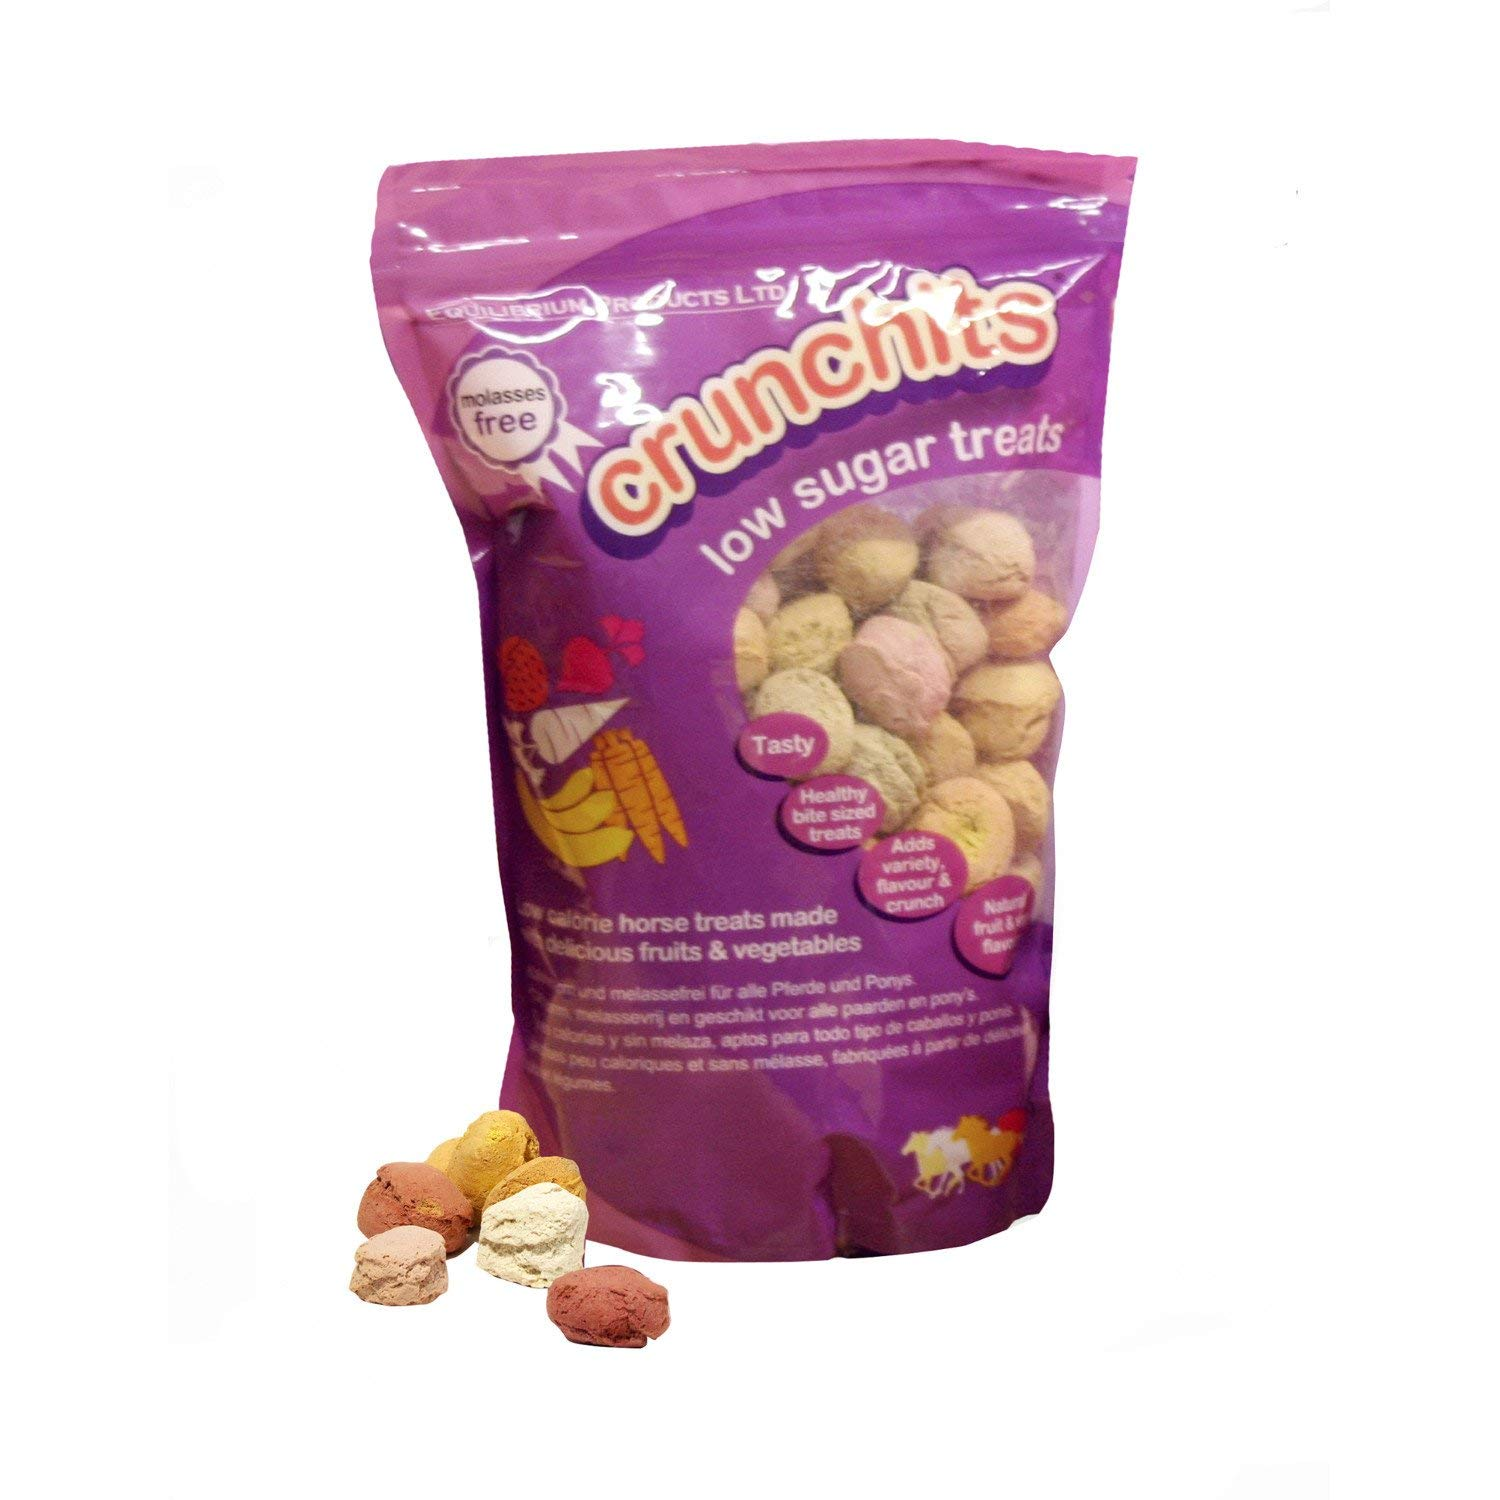 Equilibrium Crunchits Horse Treats 750g Multicoloured by Equilibrium Technologies